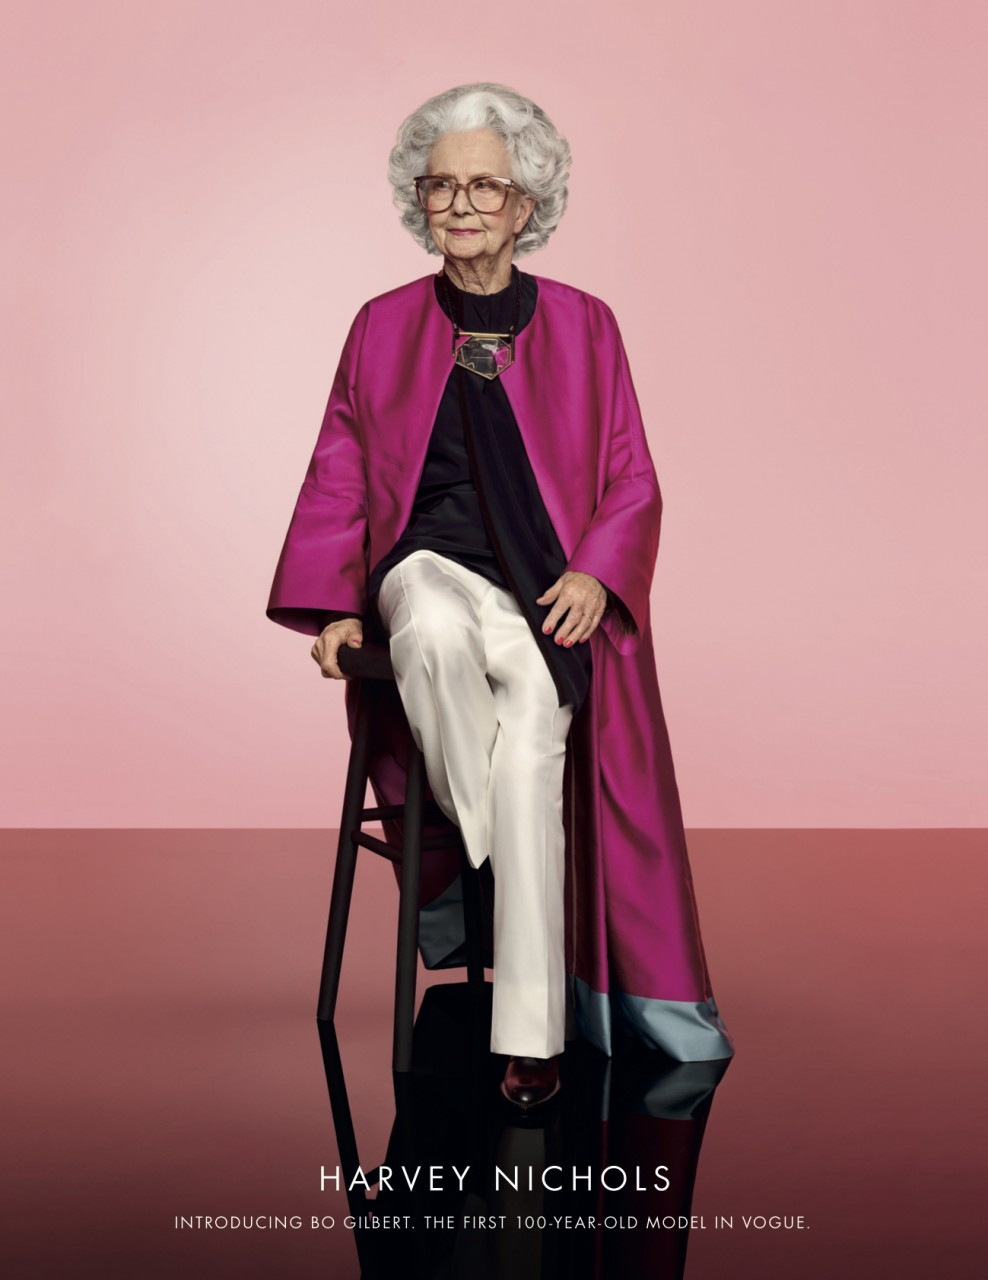 Harvey Nichols: 100 year-old model